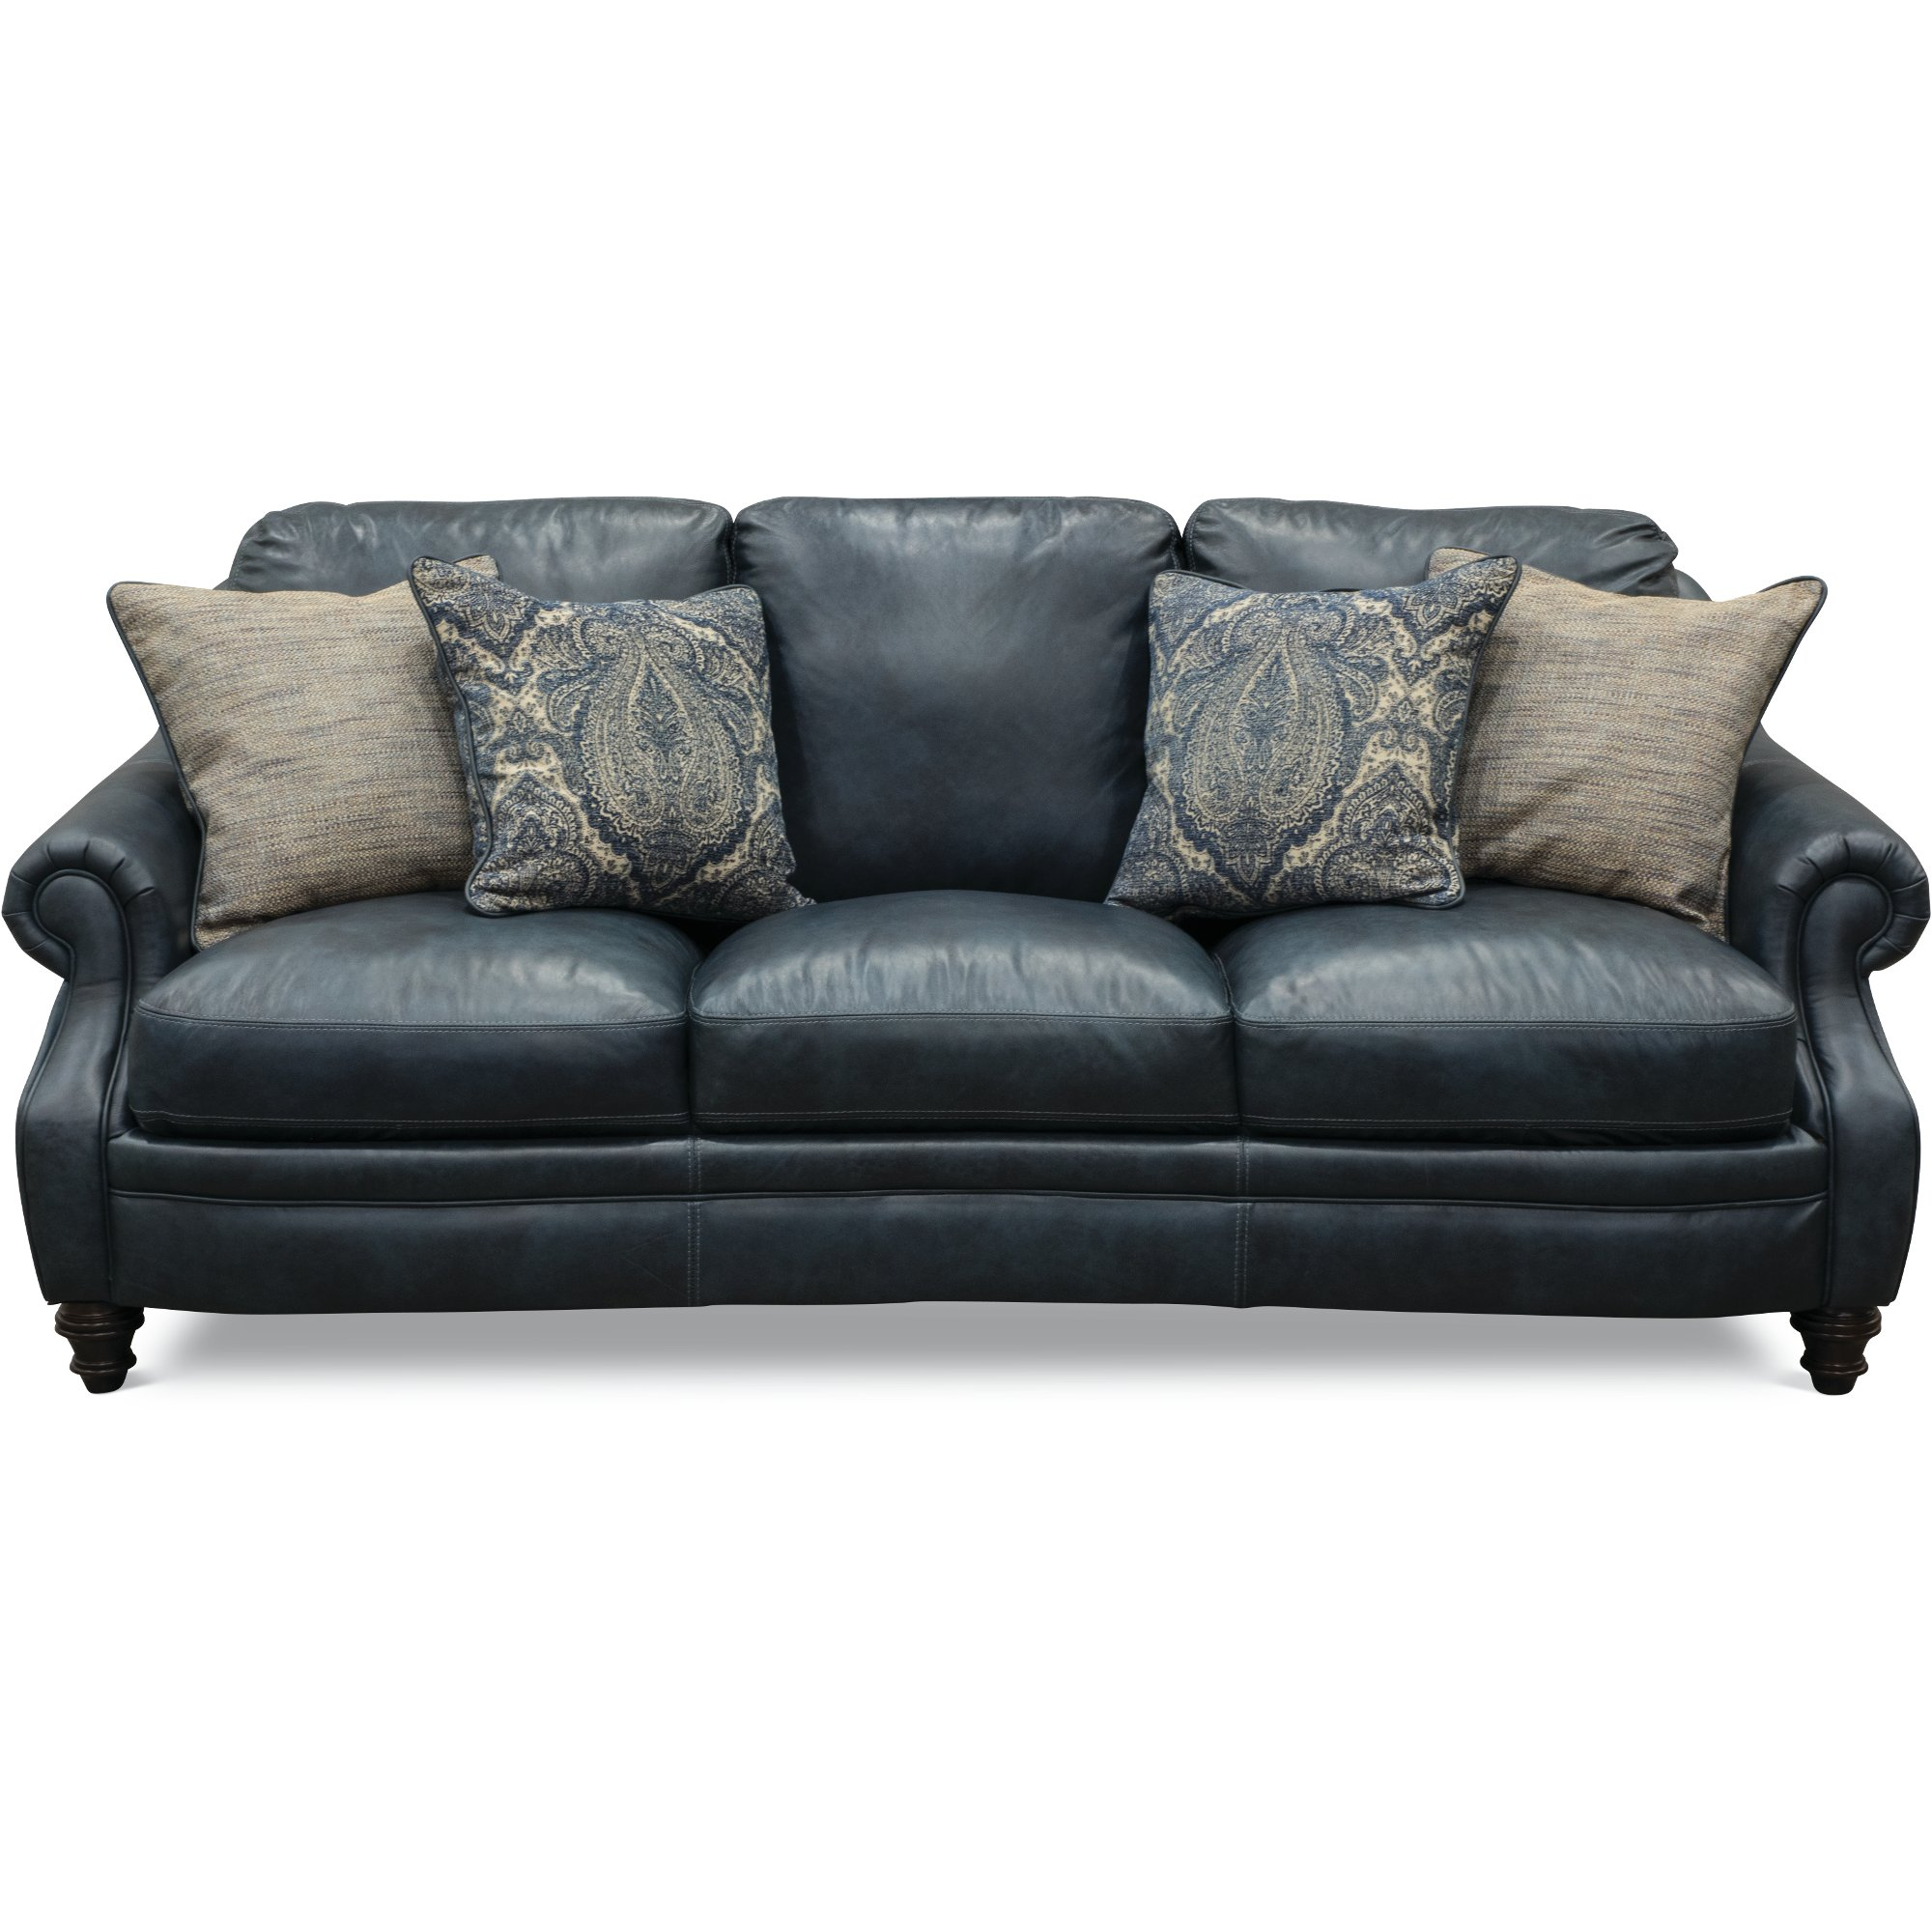 Blue Leather Sofa Bed Navy Blue Leather Couch Sofas Sofa